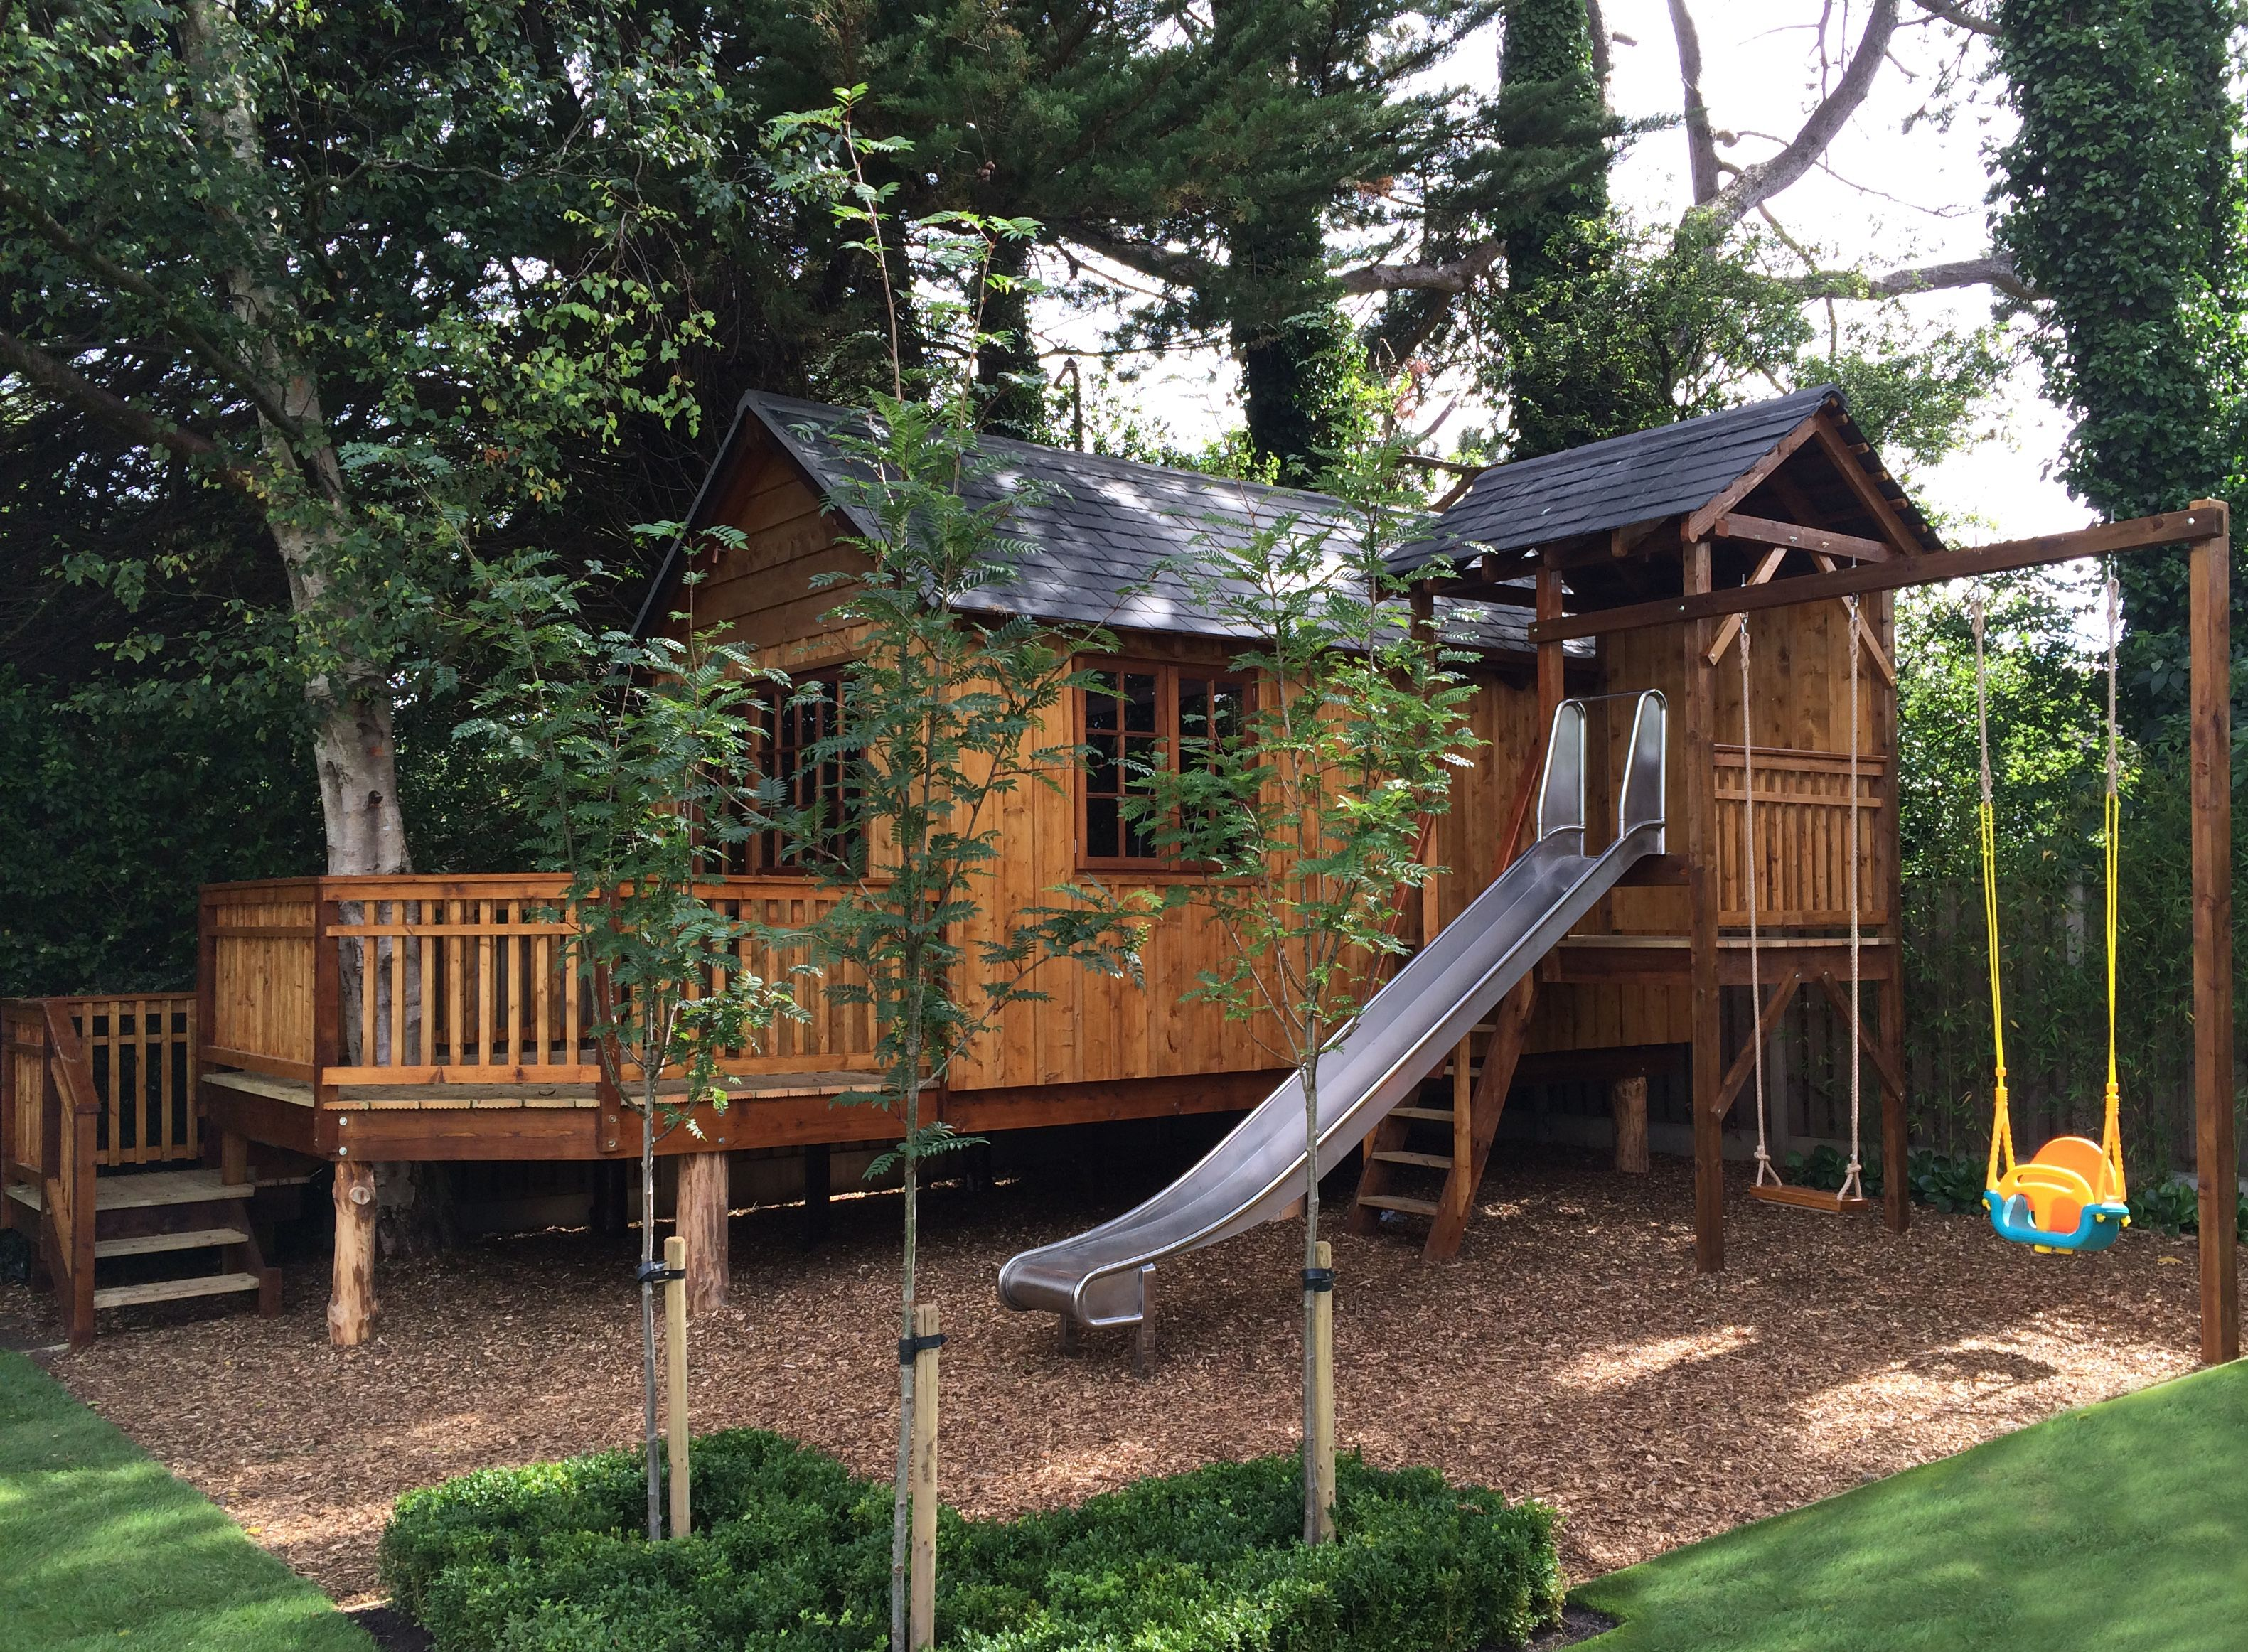 bespoke treehouse in ireland complete with play tower bespoke